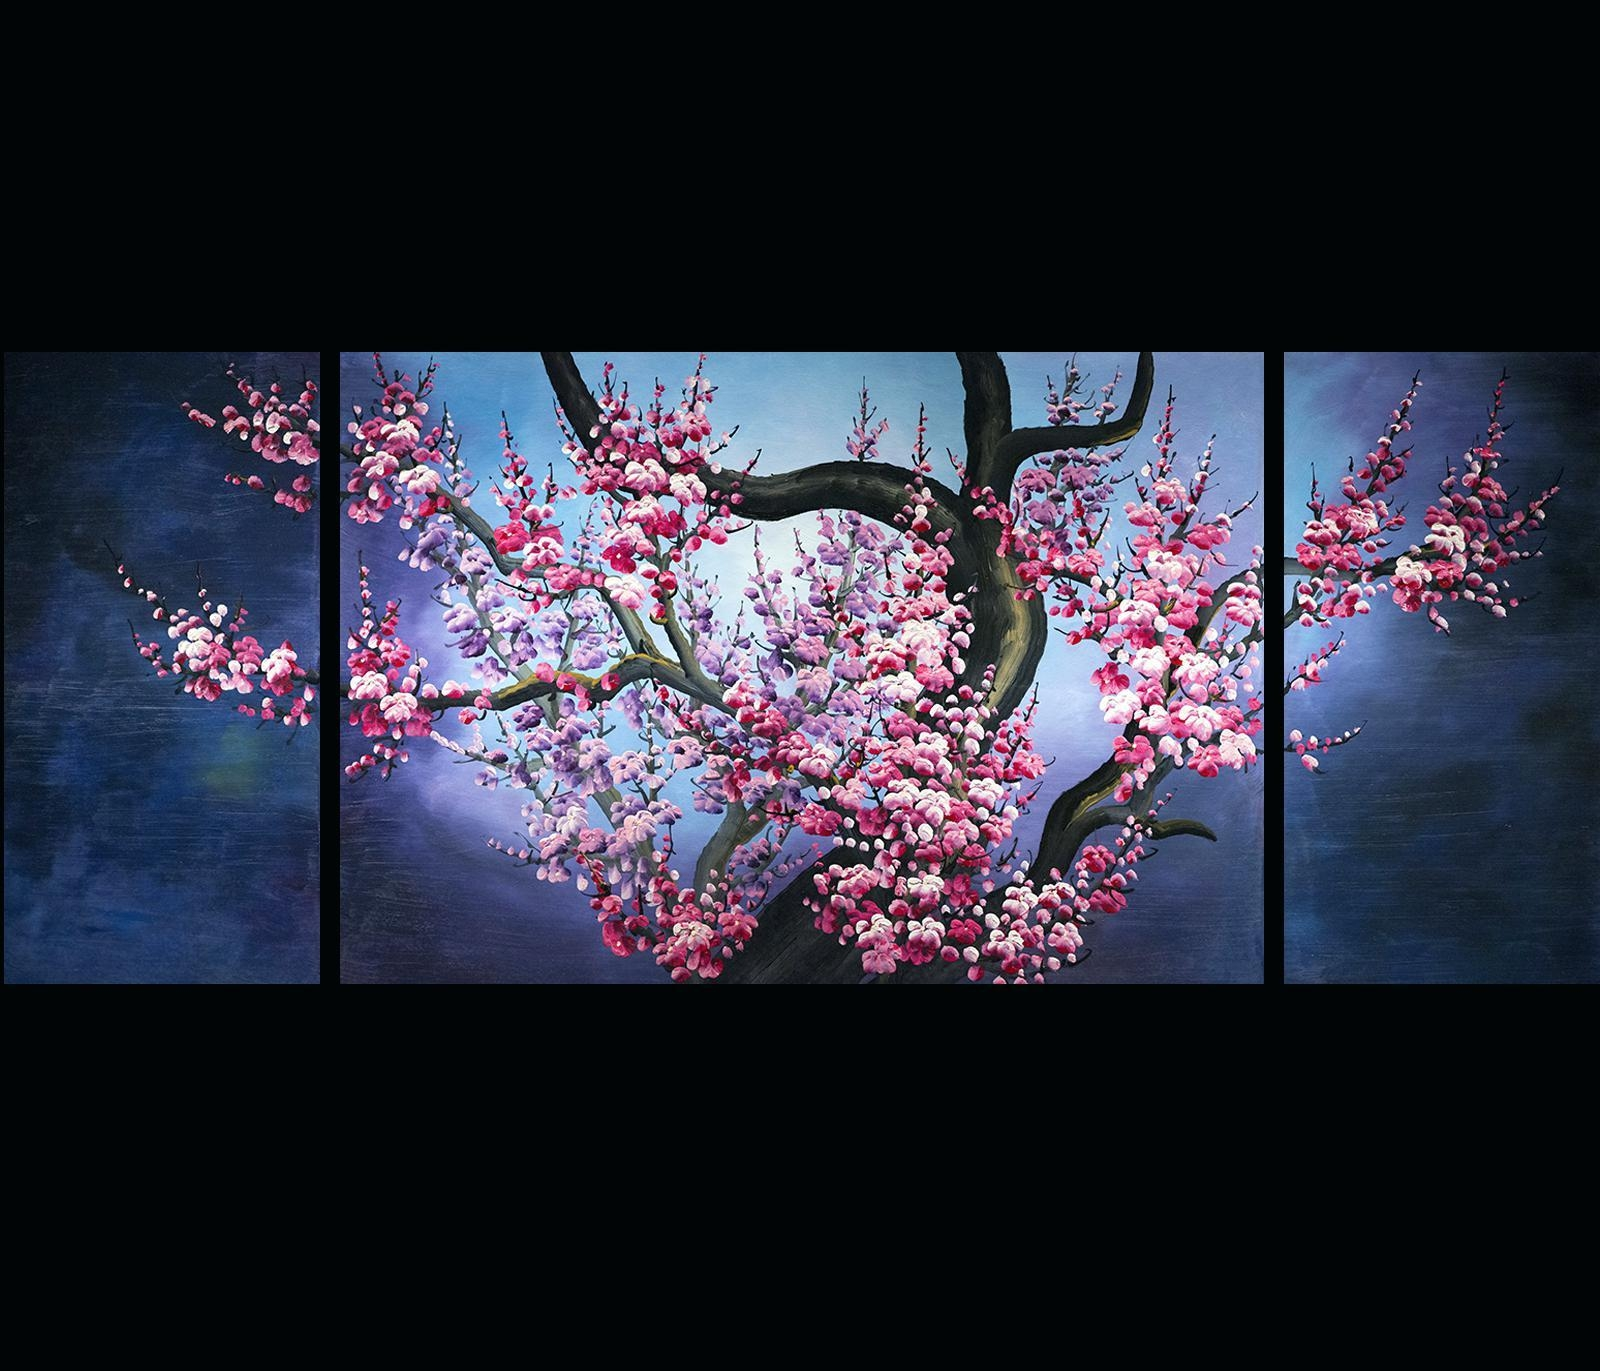 Wall Ideas : Cherry Blossom Wall Art Pier One Cherry Blossom Wall Within Cherry Blossom Vinyl Wall Art (View 15 of 20)